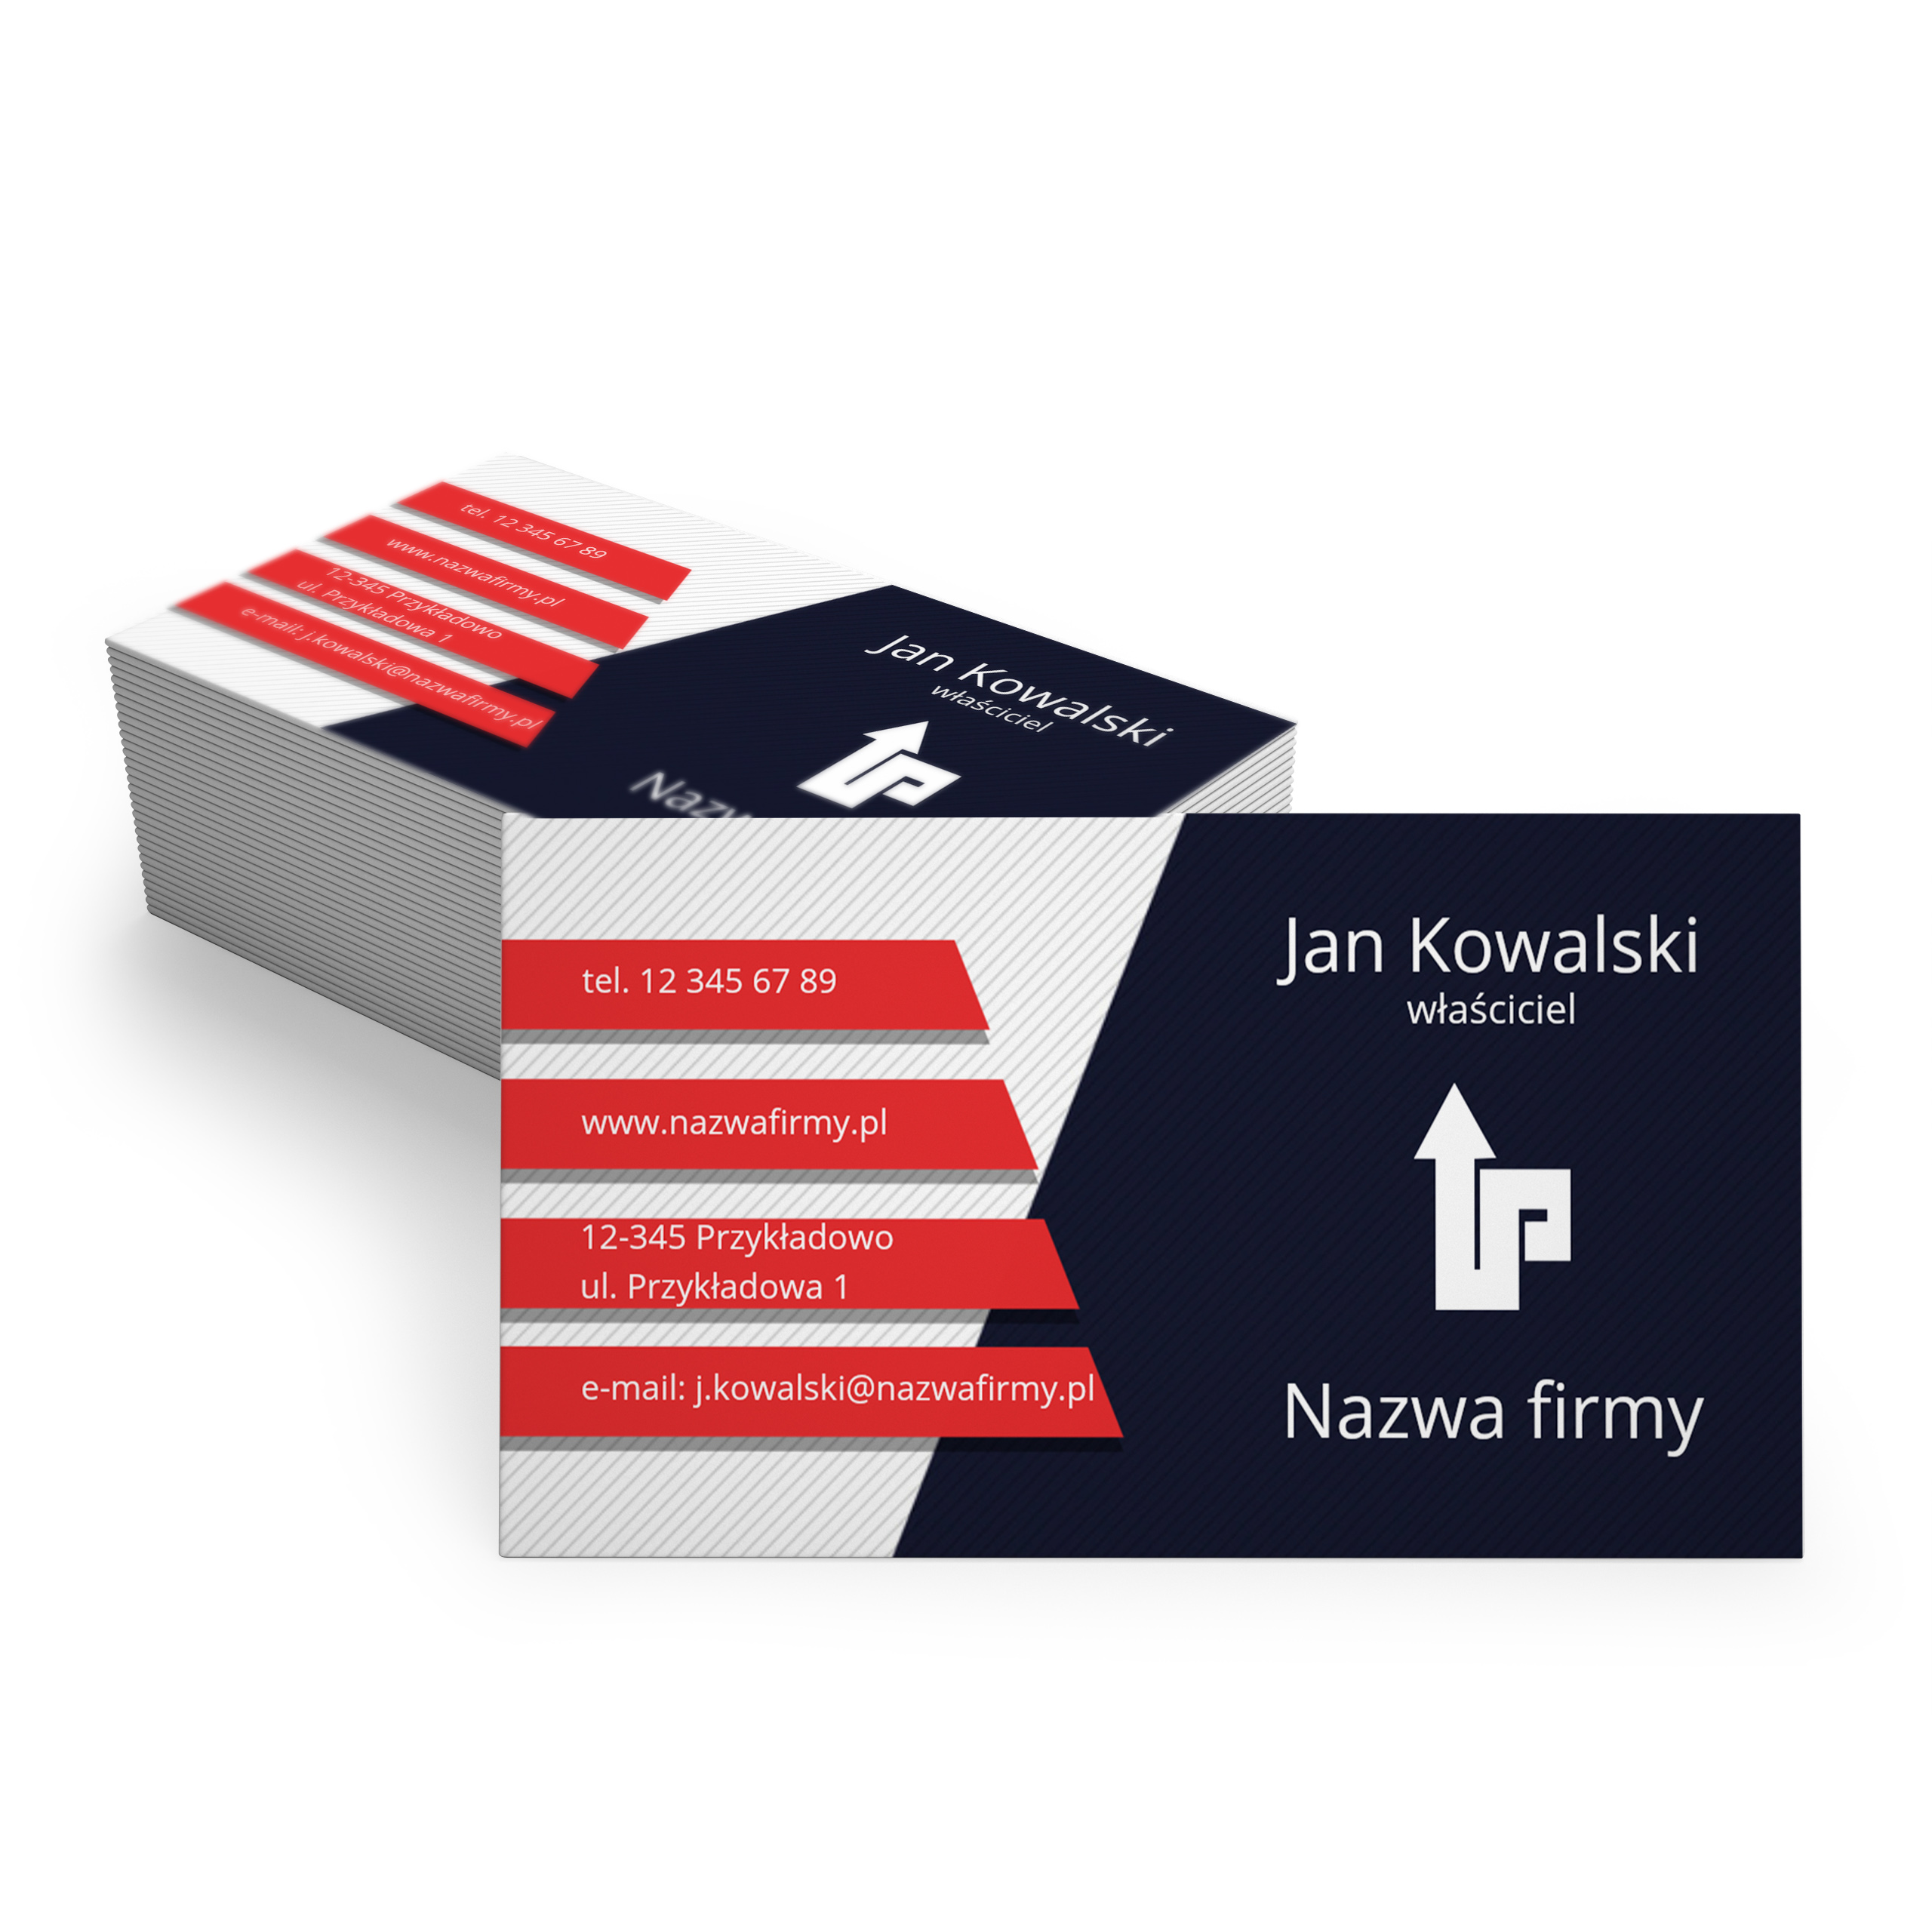 Item Business cards double-sided 500 PCs of READY-made TEMPLATES